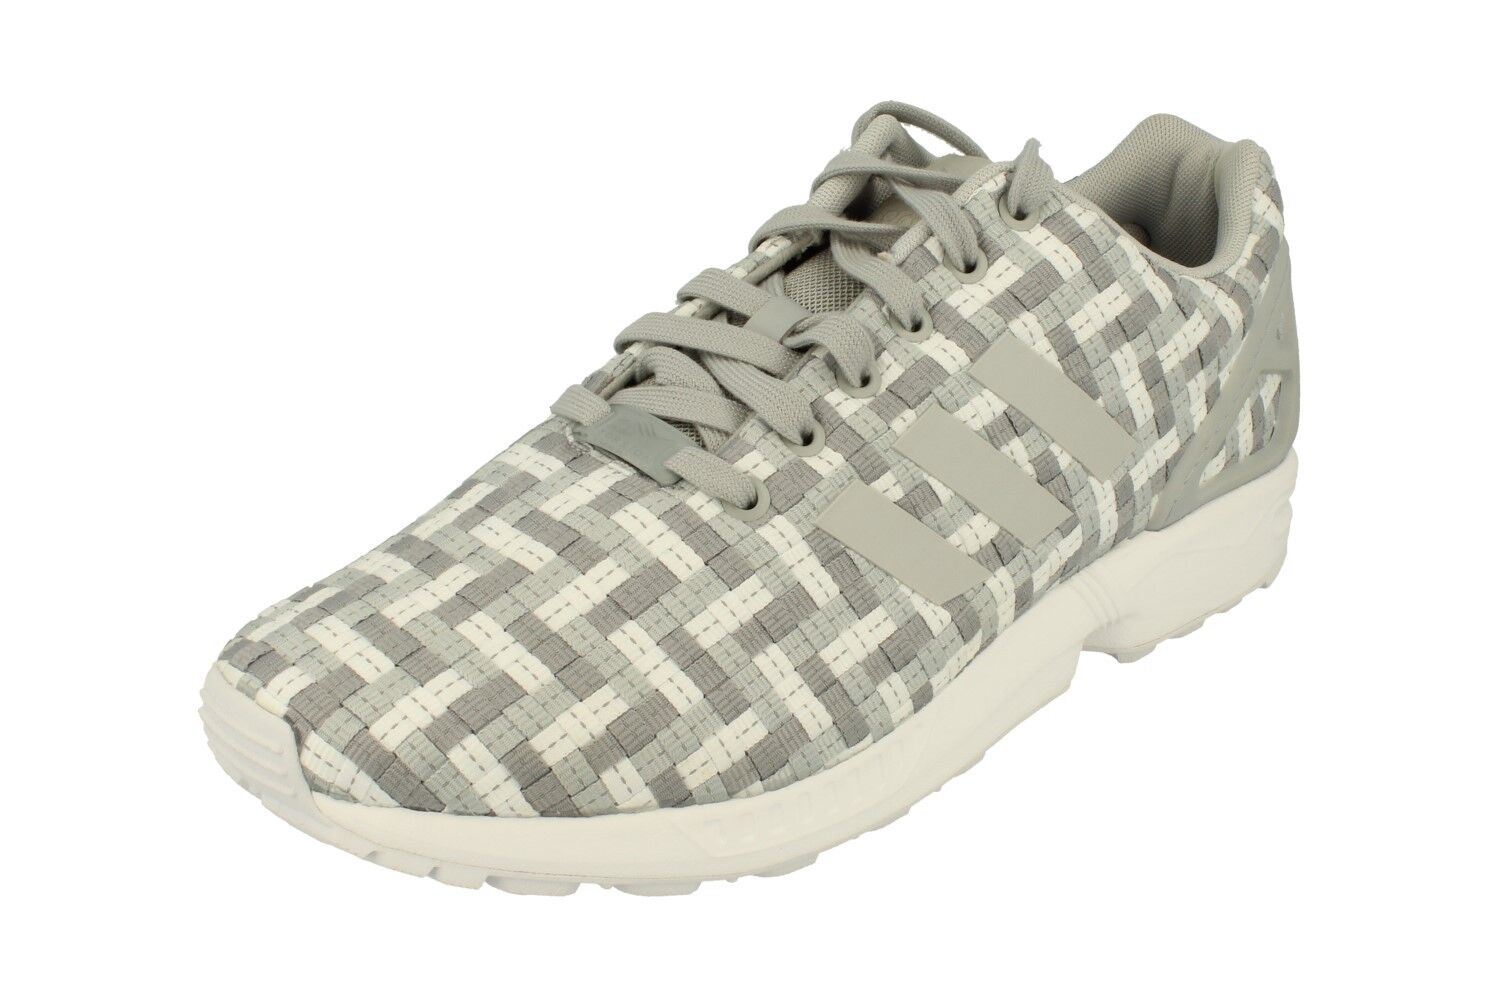 Adidas Originals Zx Flux Mens Running Trainers Trainers Trainers Sneakers  S82748 a40860 ... c2496afc9091f